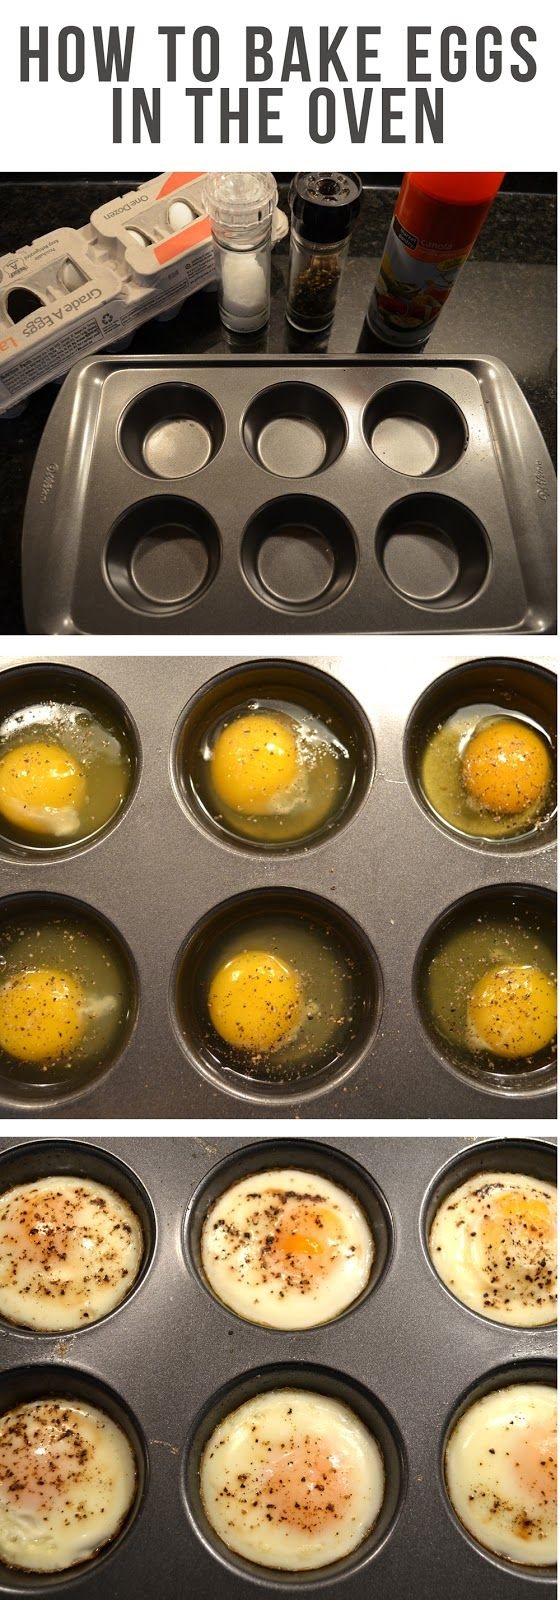 how to bake eggs in the oven  All you have to do is set your oven to 350F, grease a muffin tin with non stick cooking spray, and crack your eggs into the tin. Then add some flavor with a little shake of salt and pepper. Bake for about 17 minutes